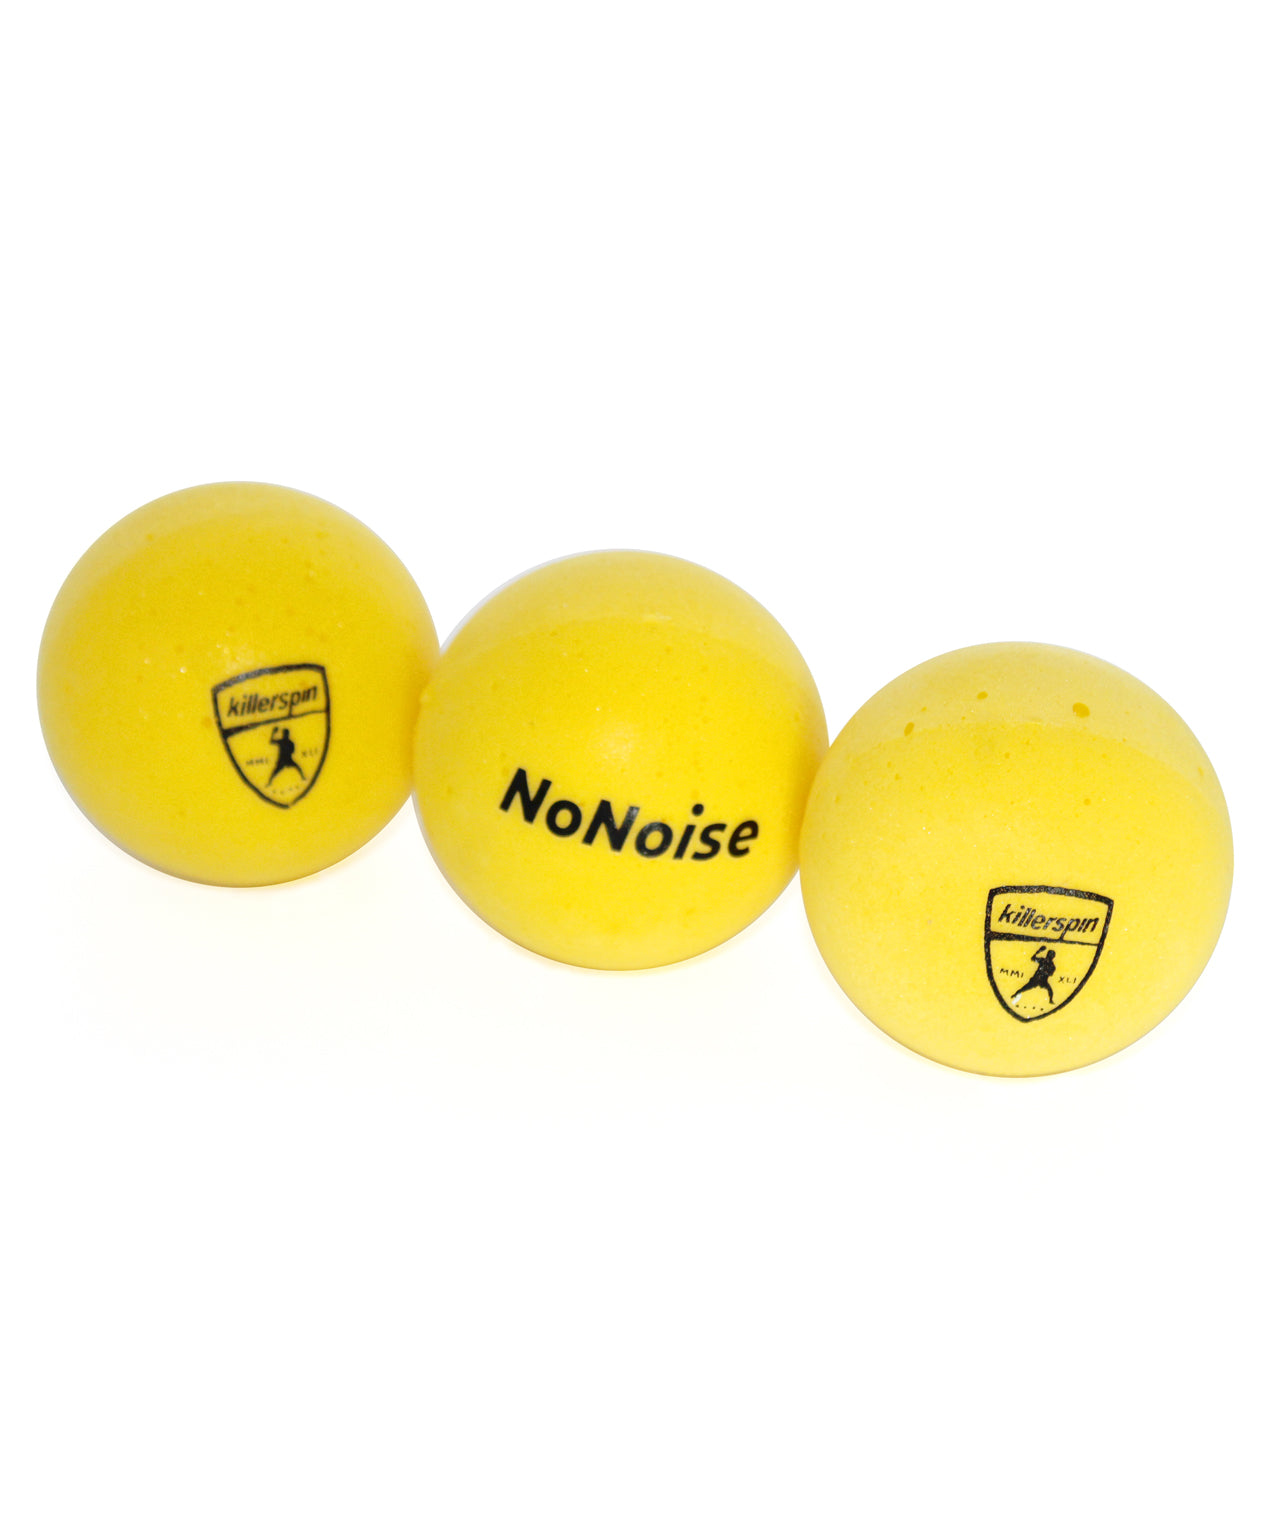 Killerspin No Noise Table Tennis Rubber Balls - Multiple Balls